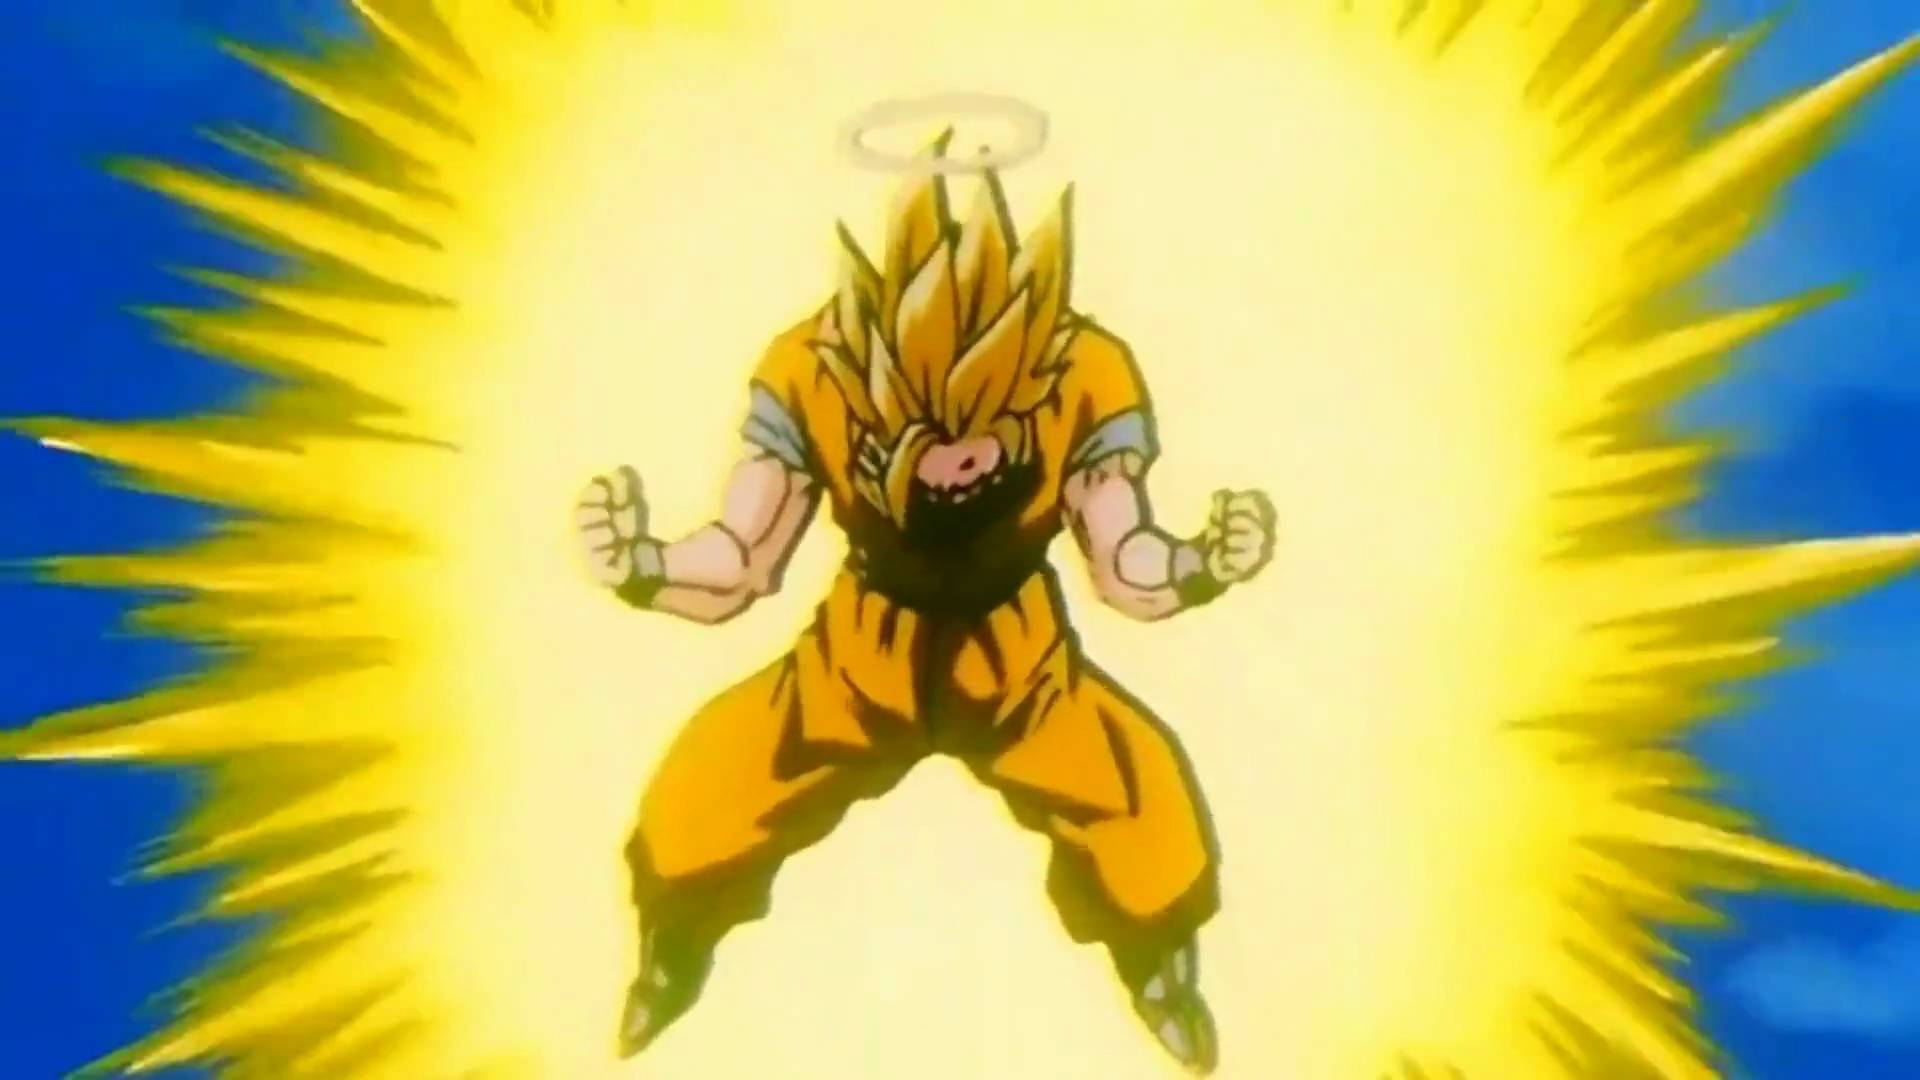 Super Saiyan wallpapers